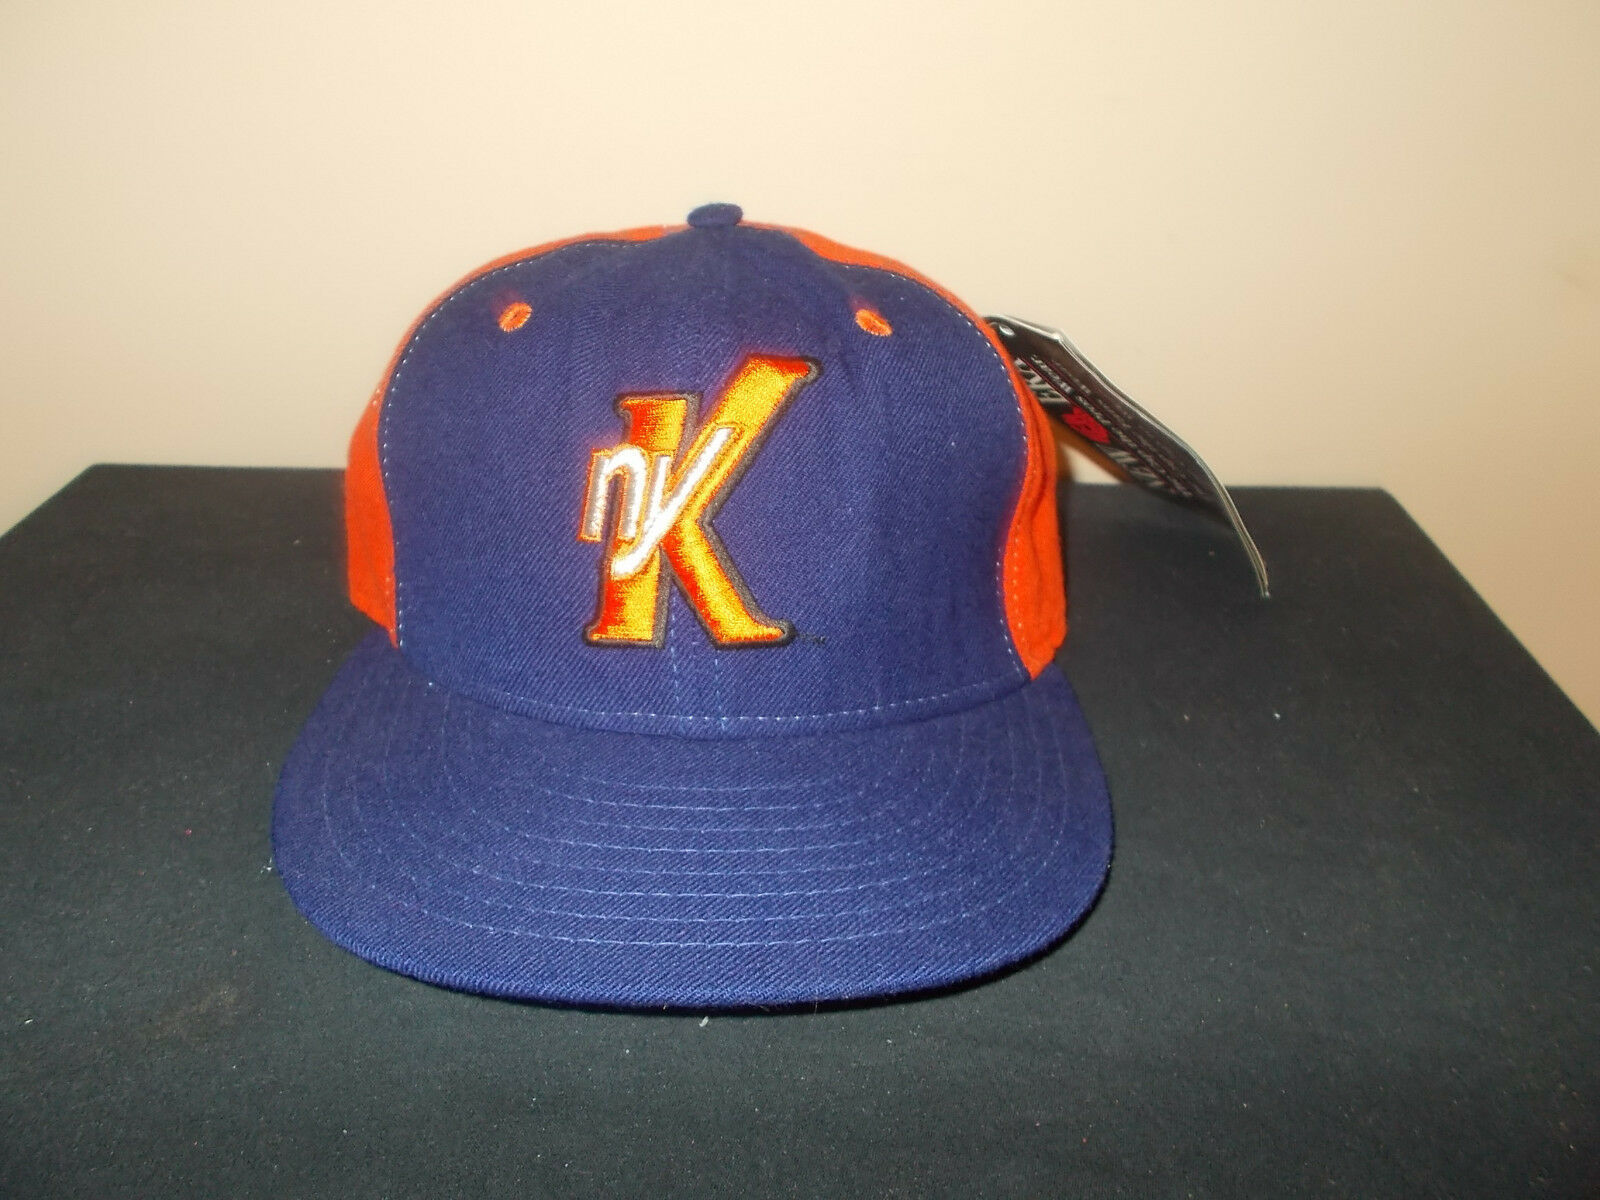 Primary image for Vtg-Rare 1990s Nueva York Knicks New Era Spike Lee Estilo 5950 Gorra Ajustada